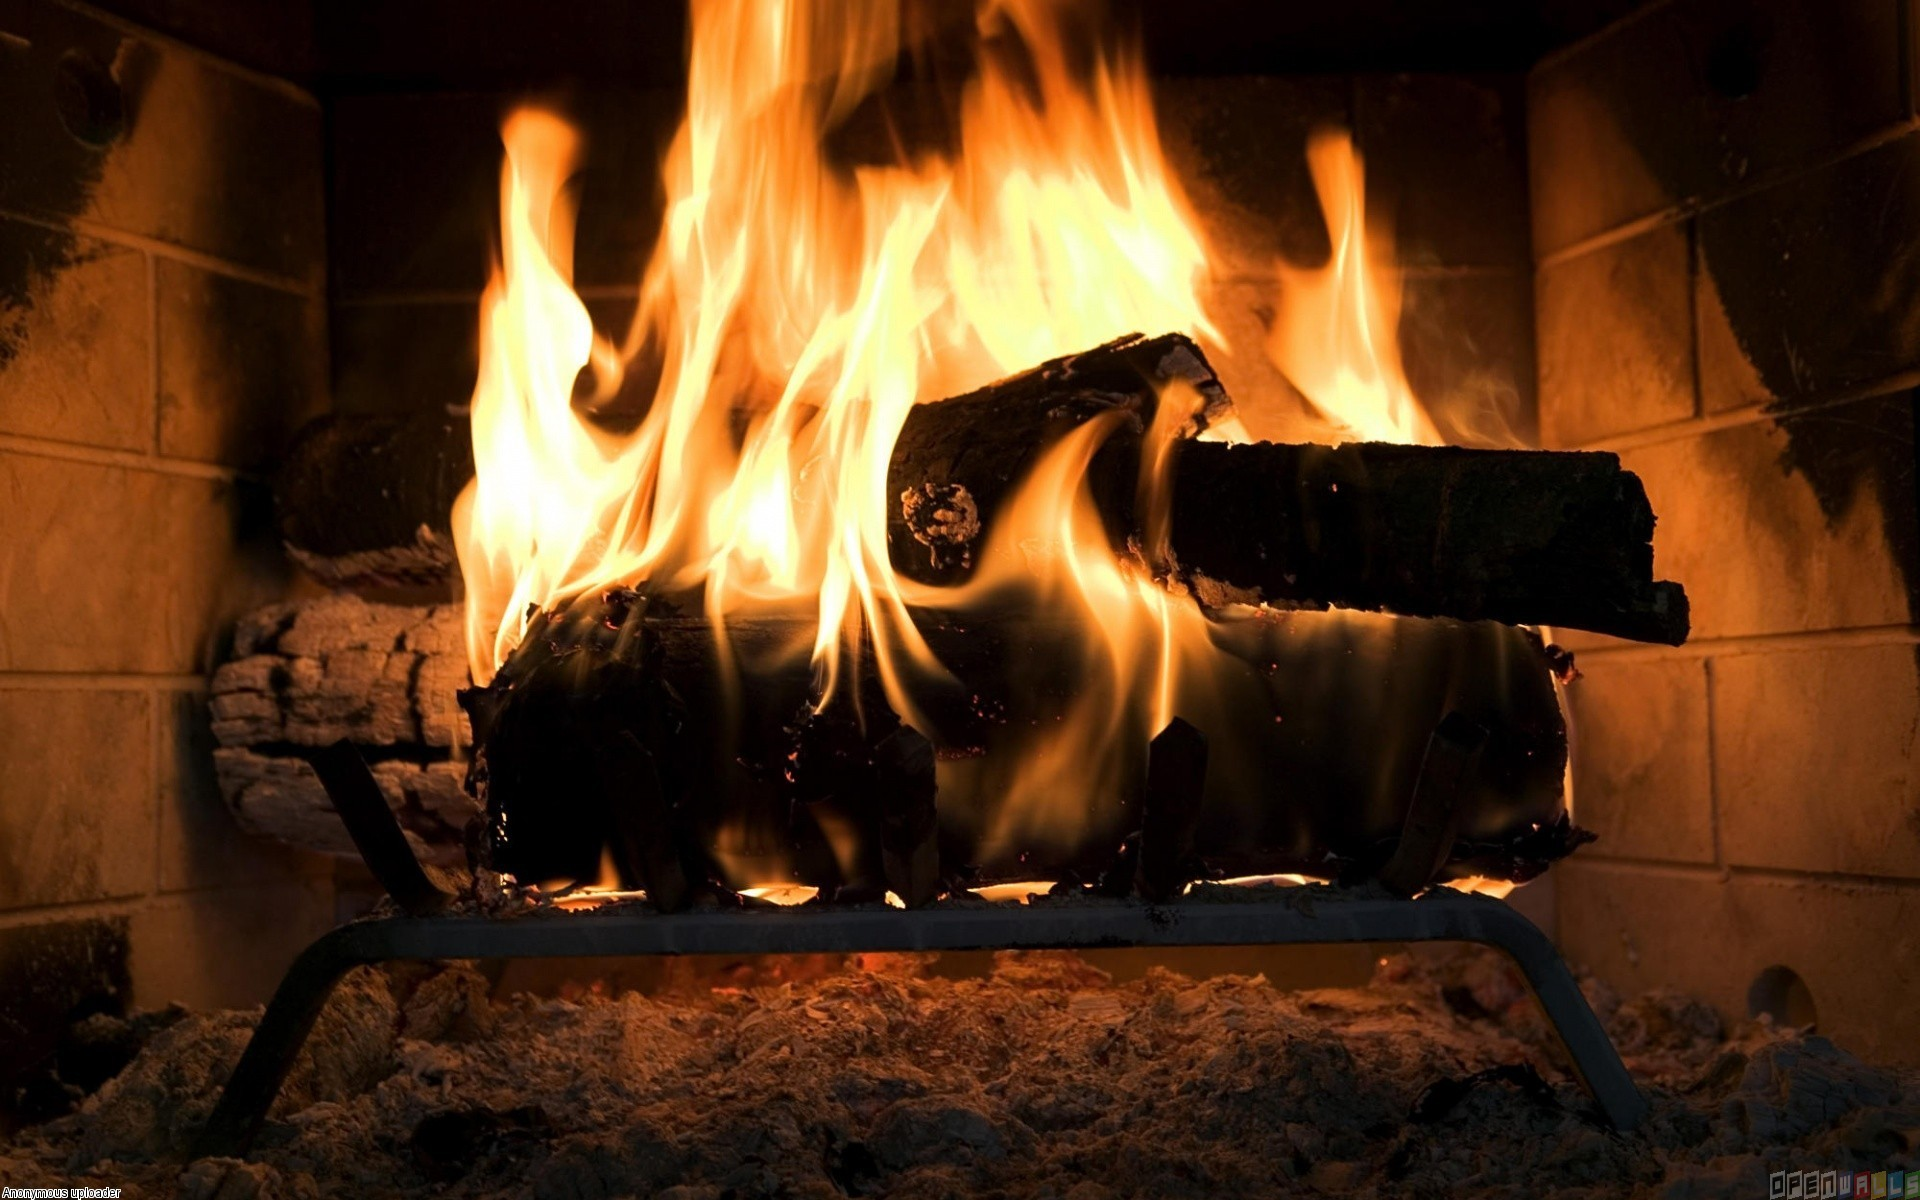 The fire in the fireplace wallpaper 6684   Open Walls 1920x1200